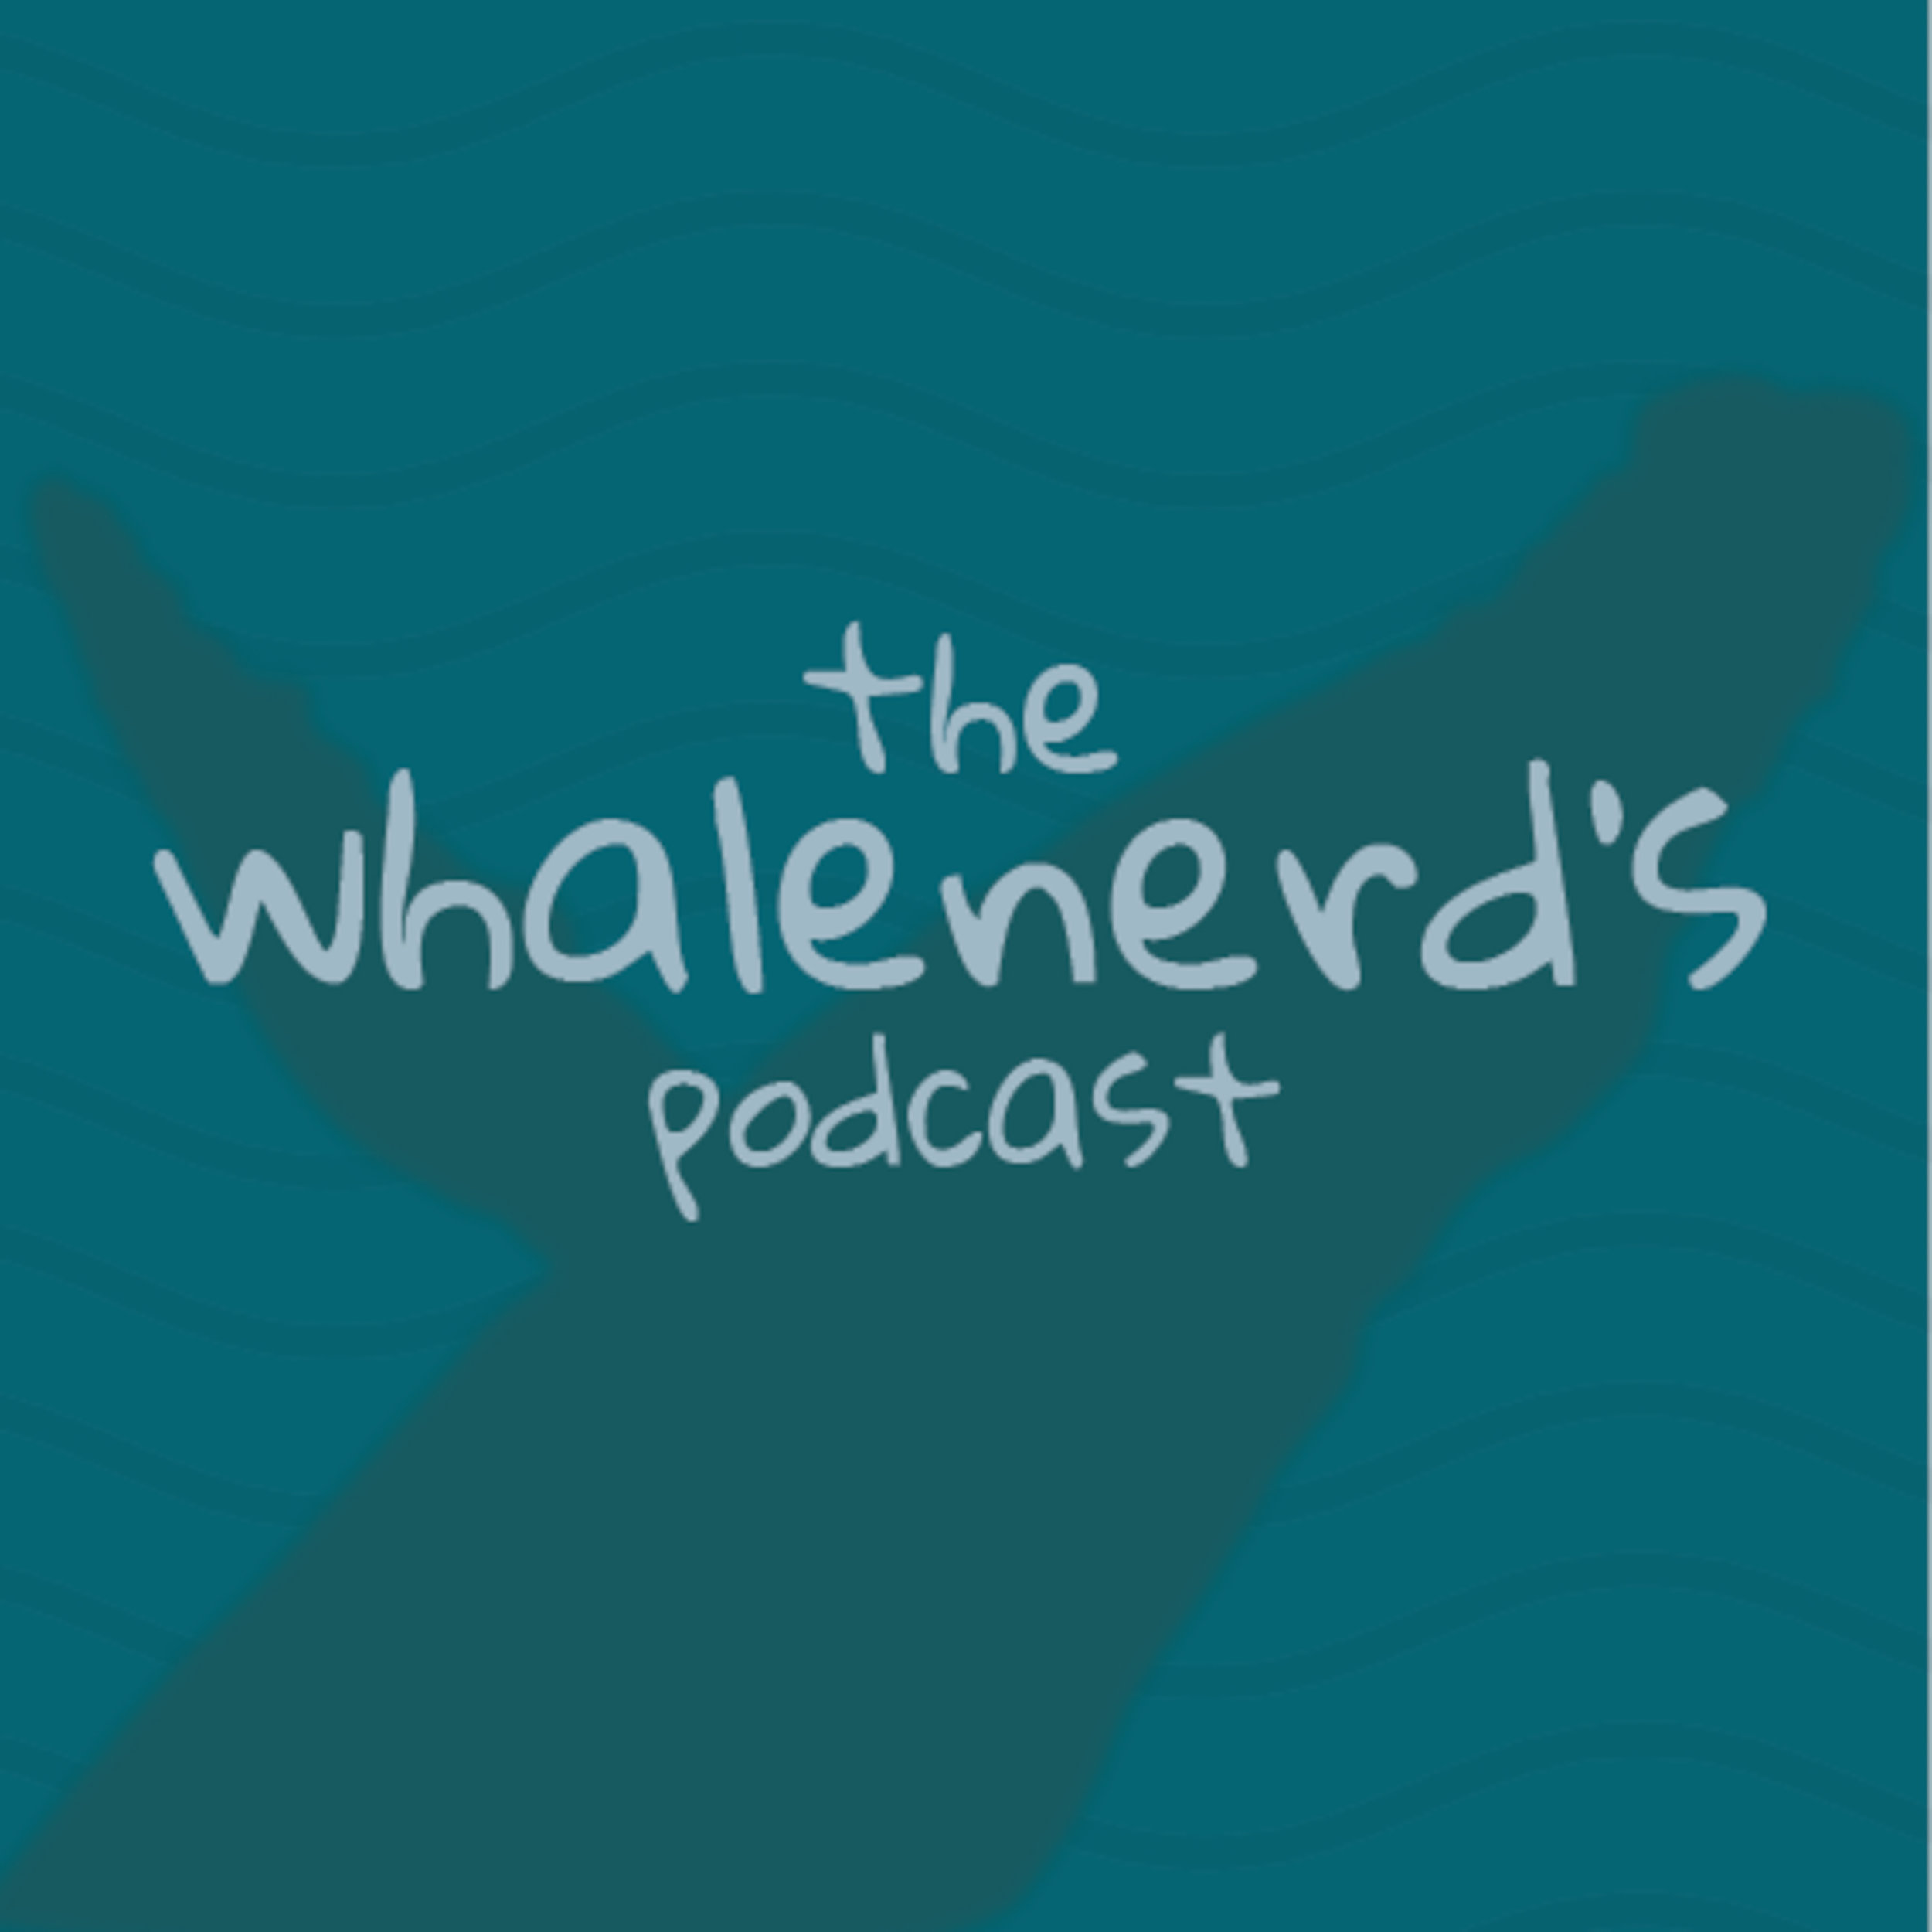 The Whalenerd's    Podcast - Check out our episodes below